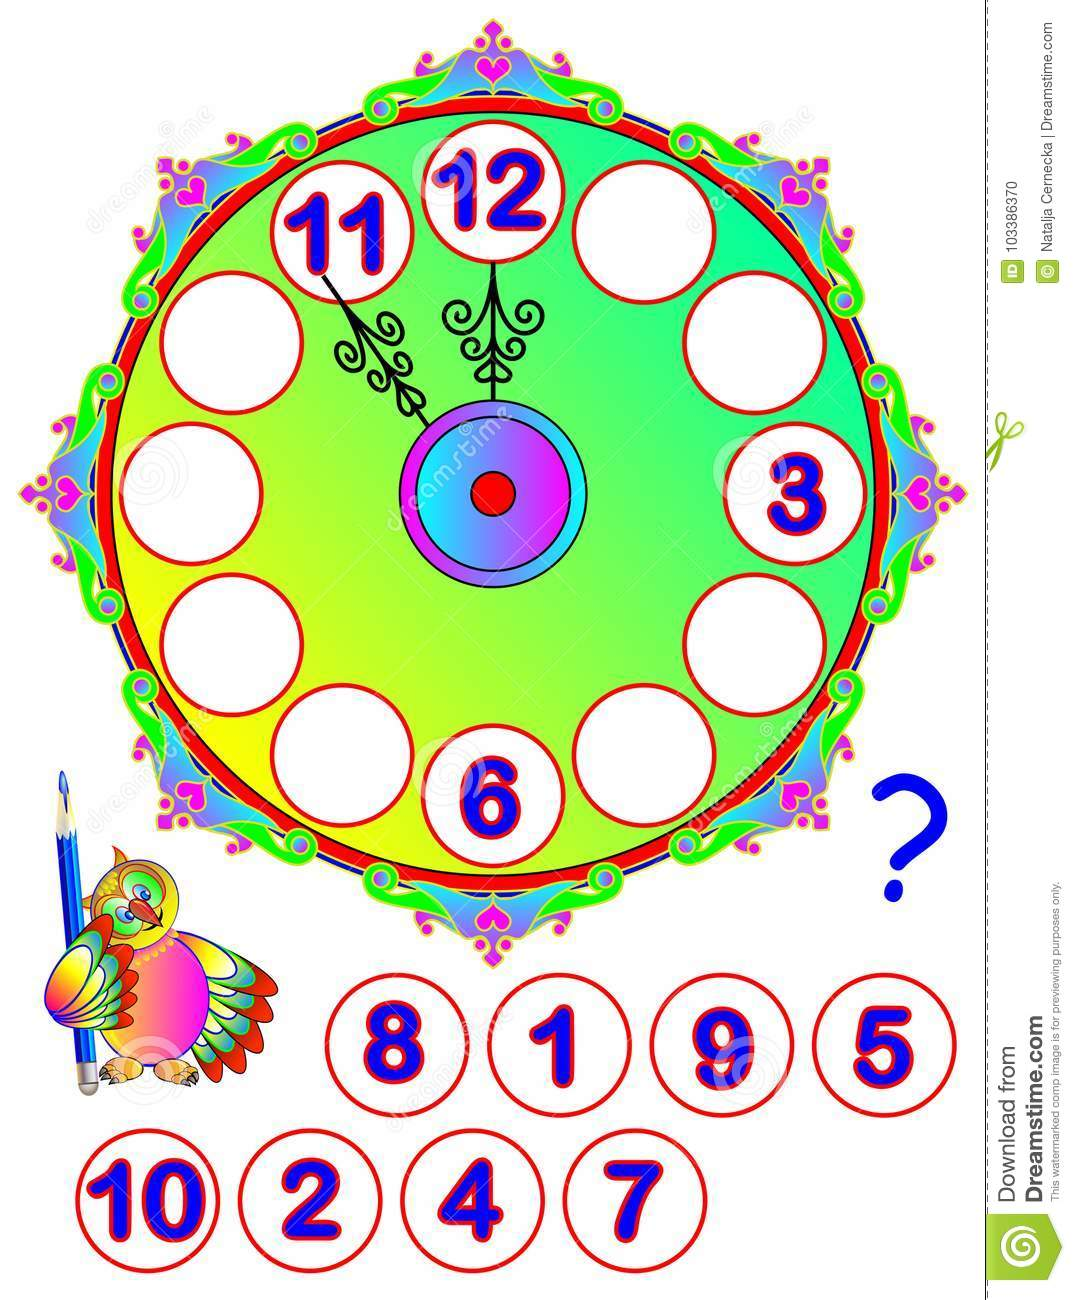 Worksheet For Young Children. Repair The Clock. Find The Missing ...